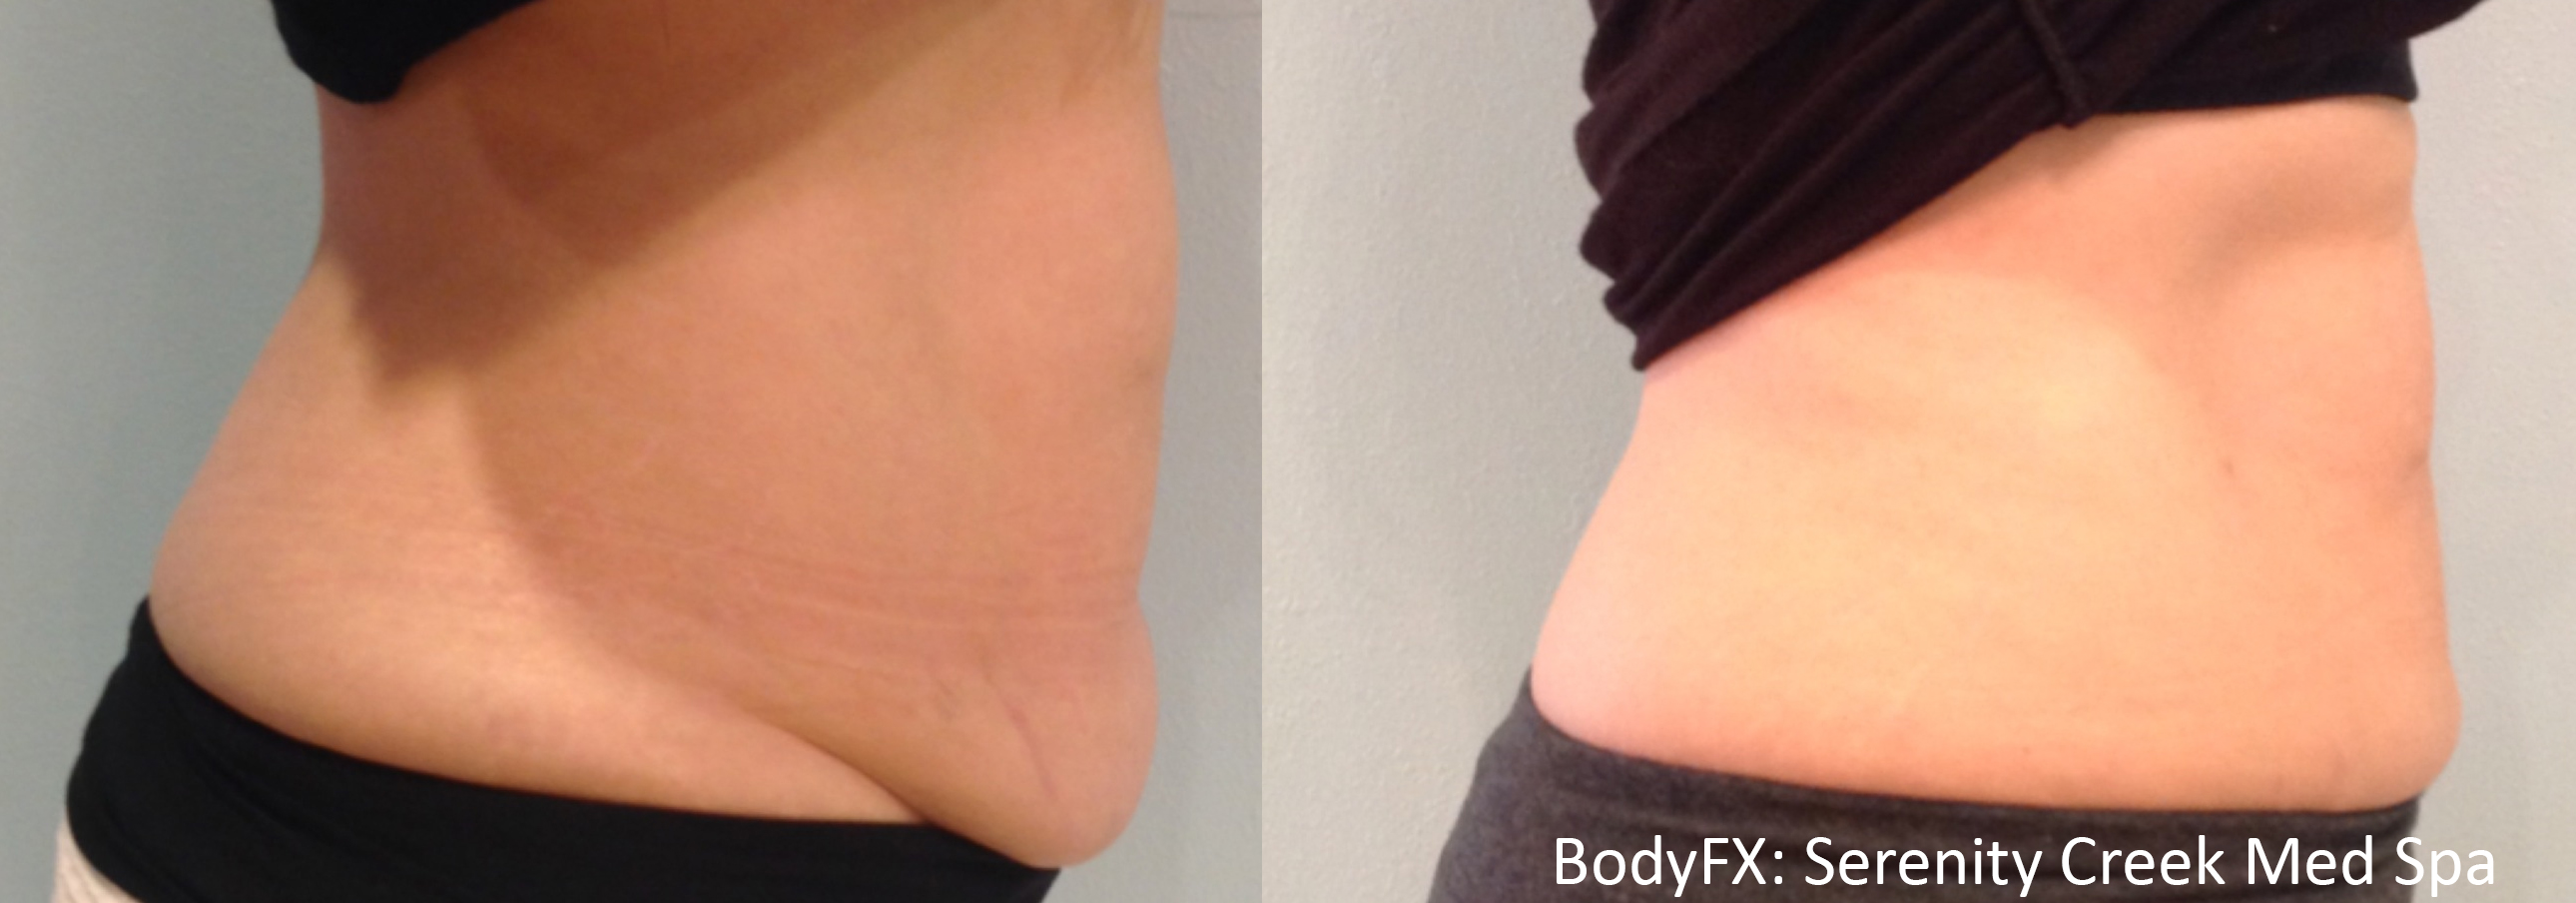 BodyFX_Before&After_009